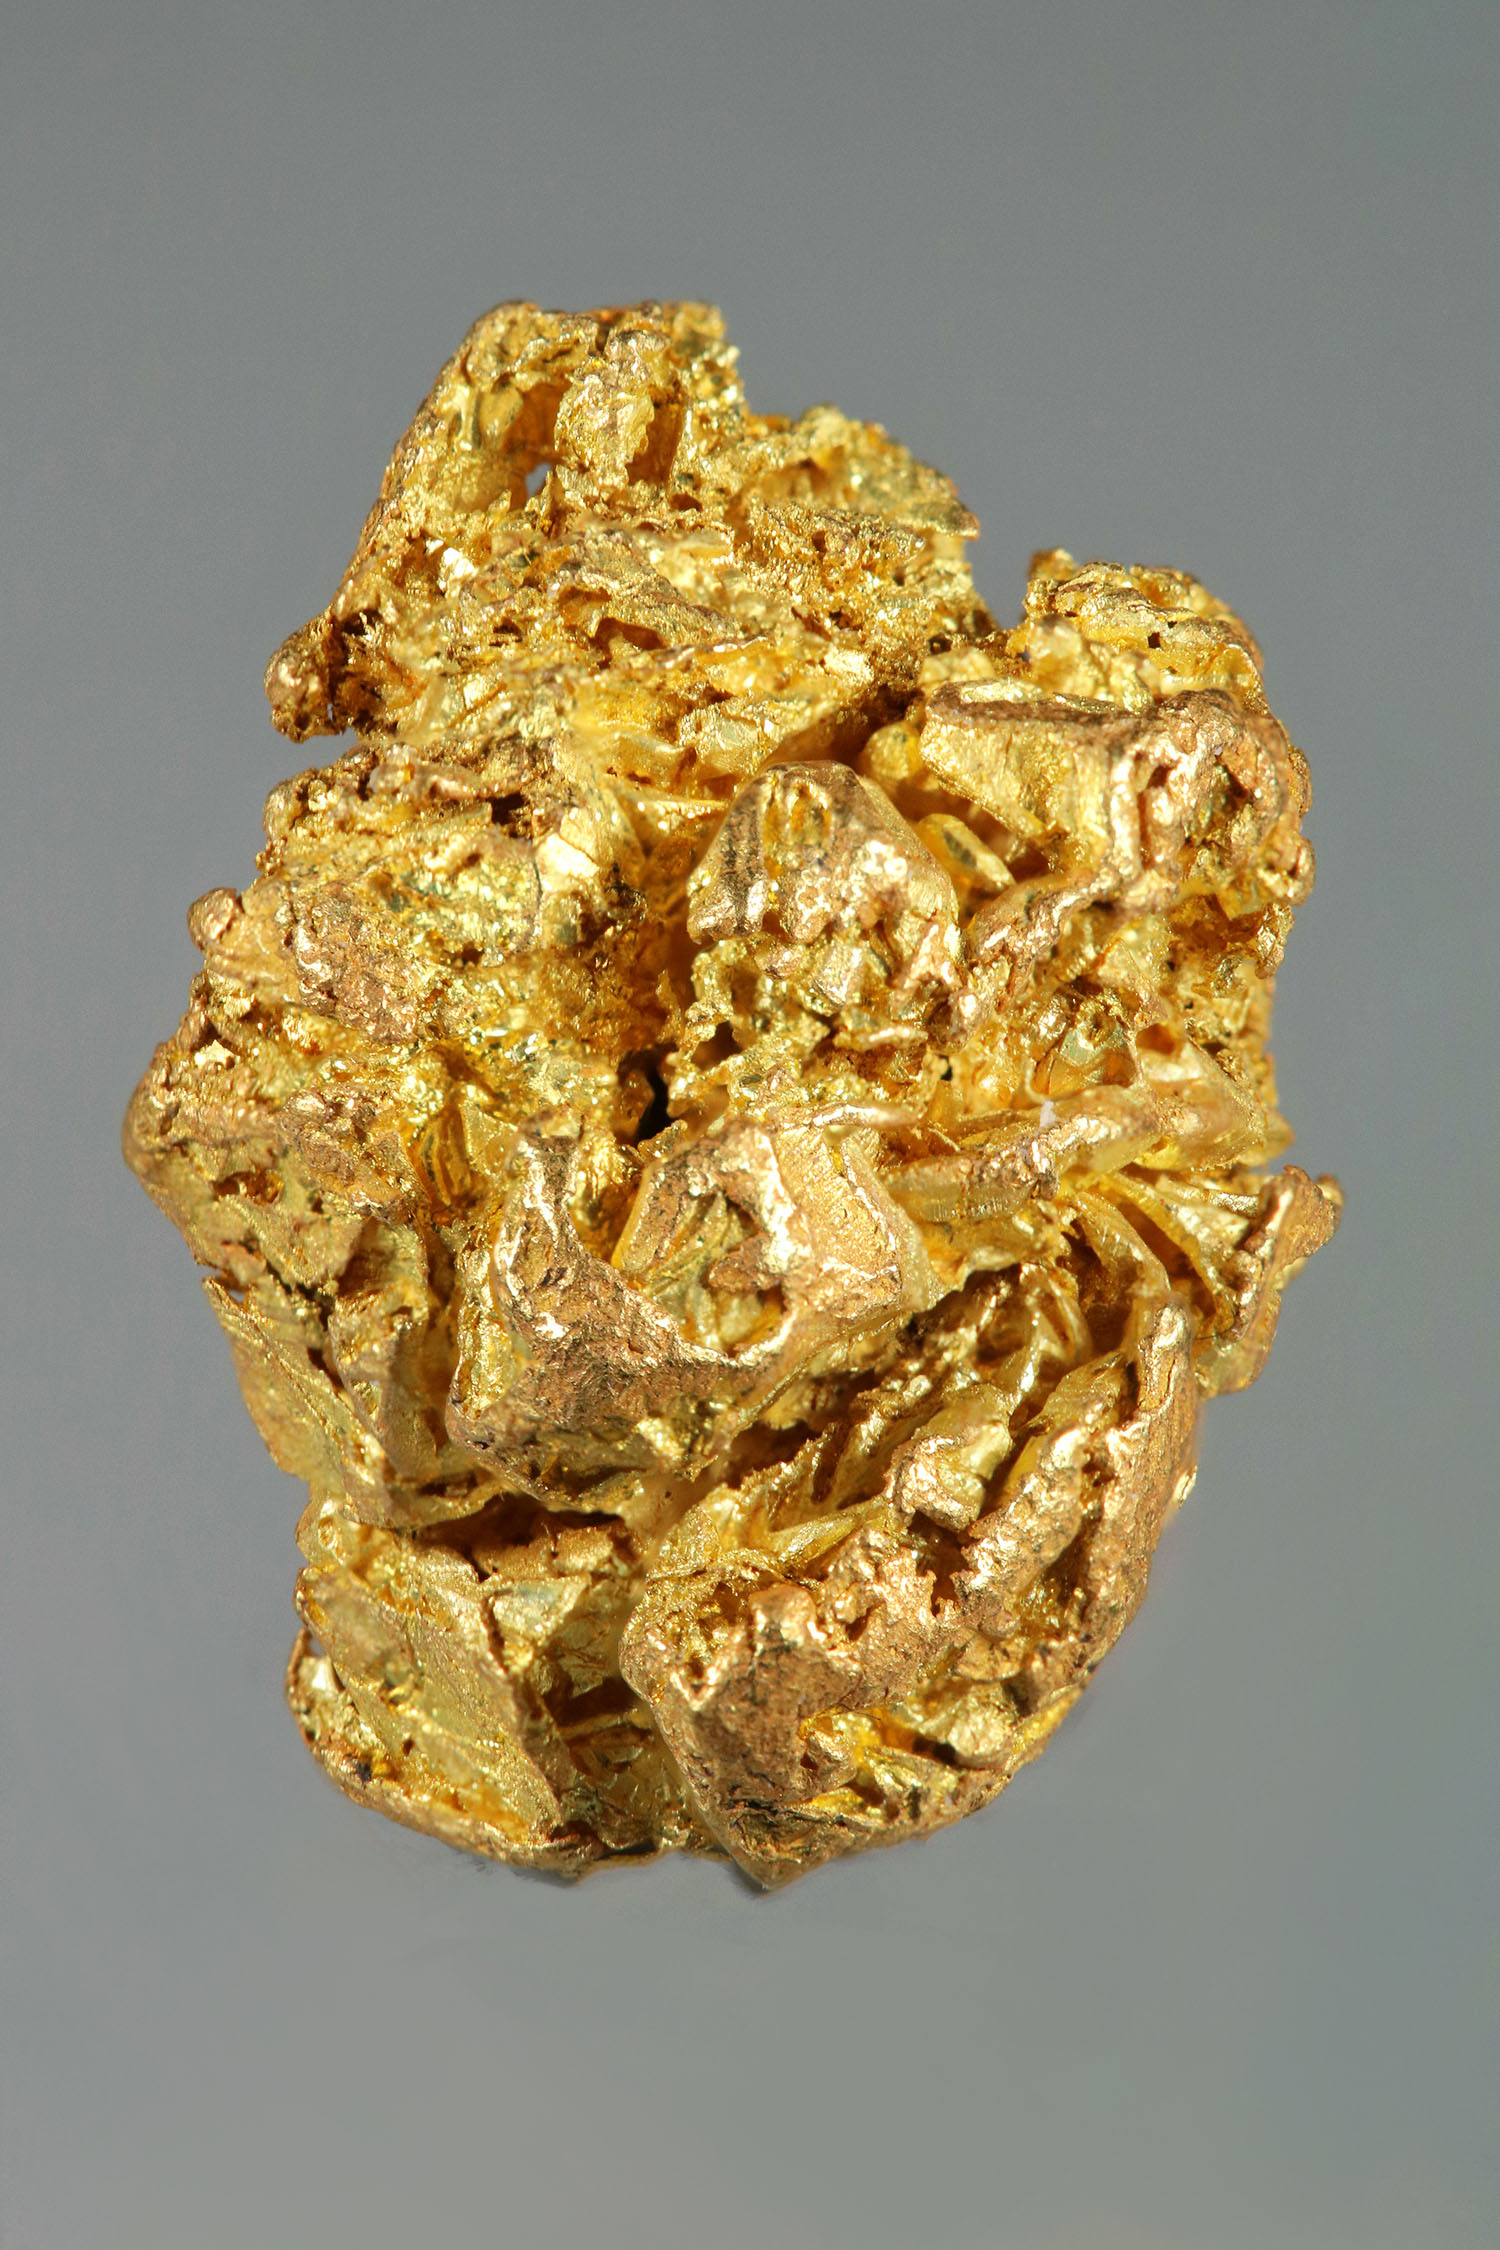 Thick Gold Crystal Specimen from the Yukon